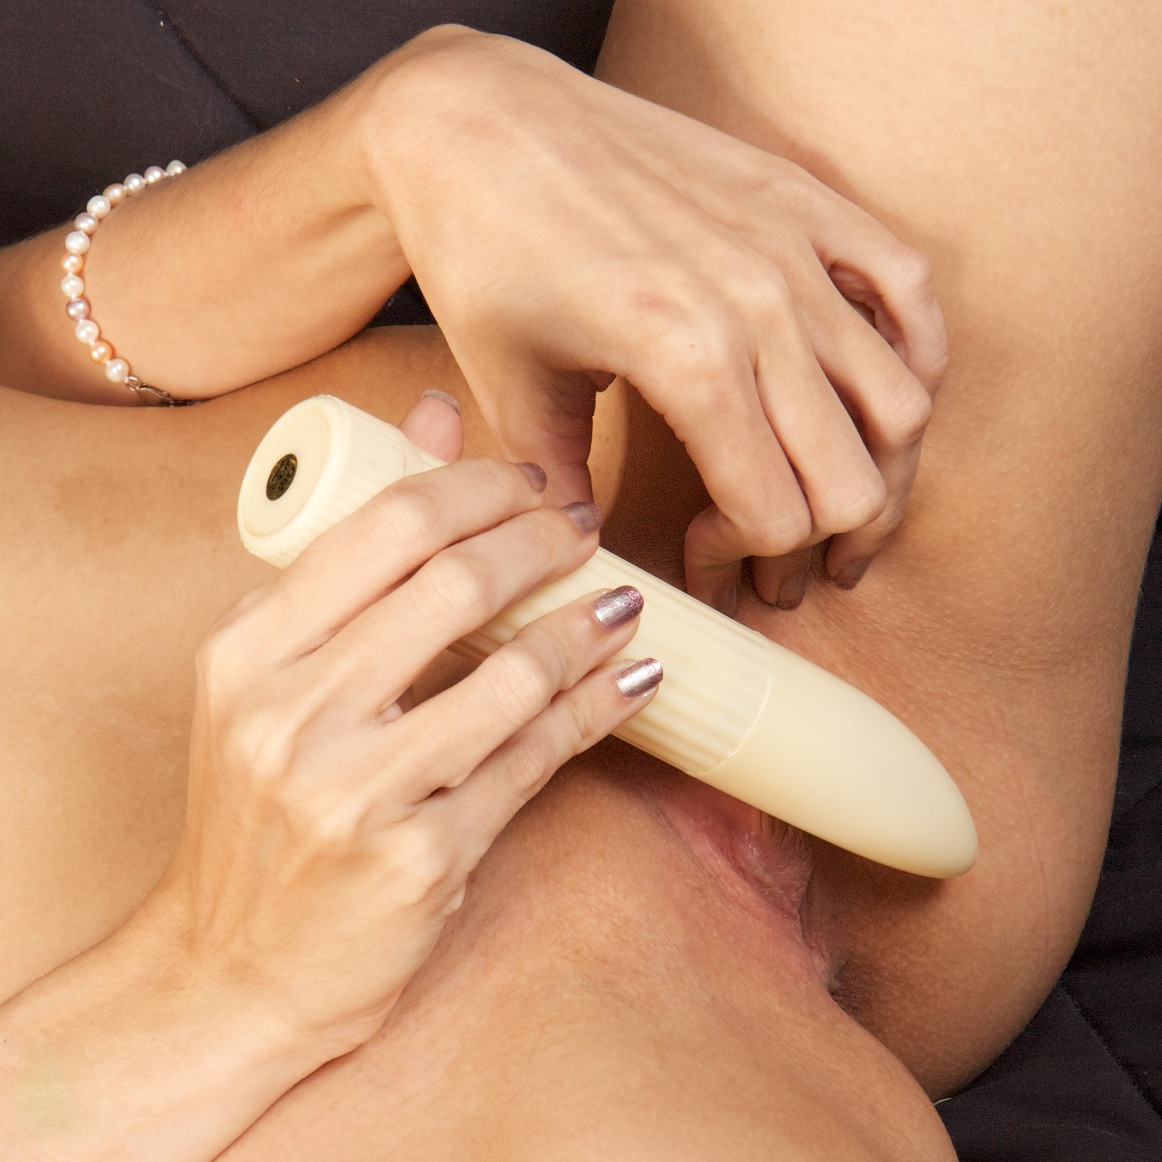 Filewoman Massages Labia Minora And Clitoris With A -8078